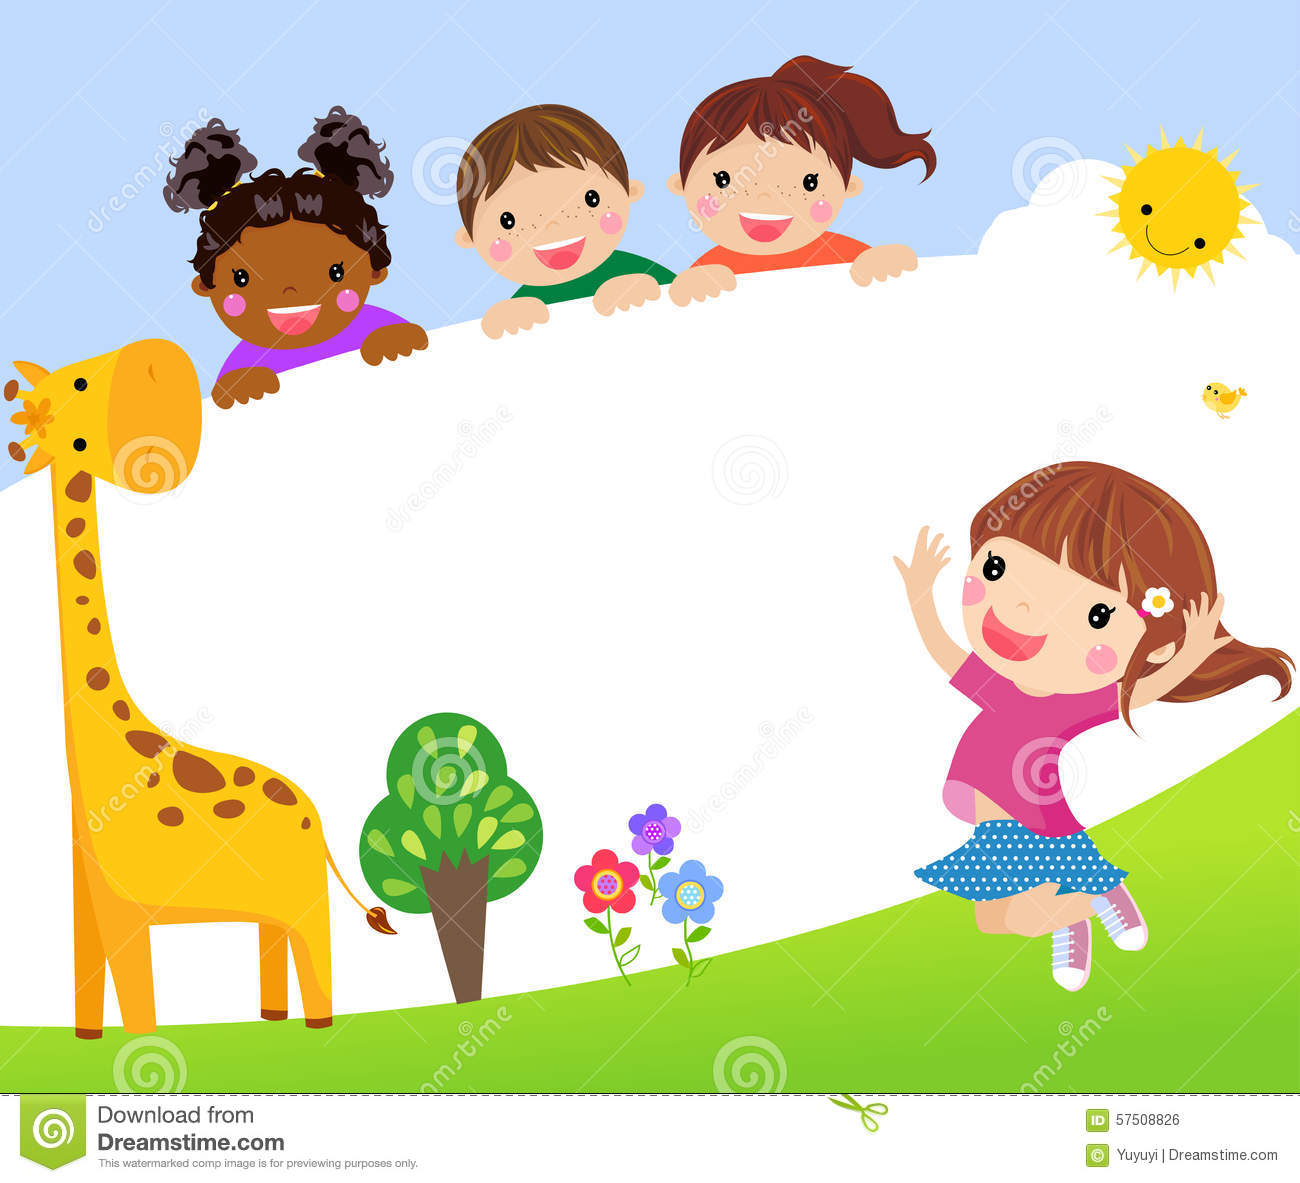 Color Frame With Group Of Kids And Giraffebackground